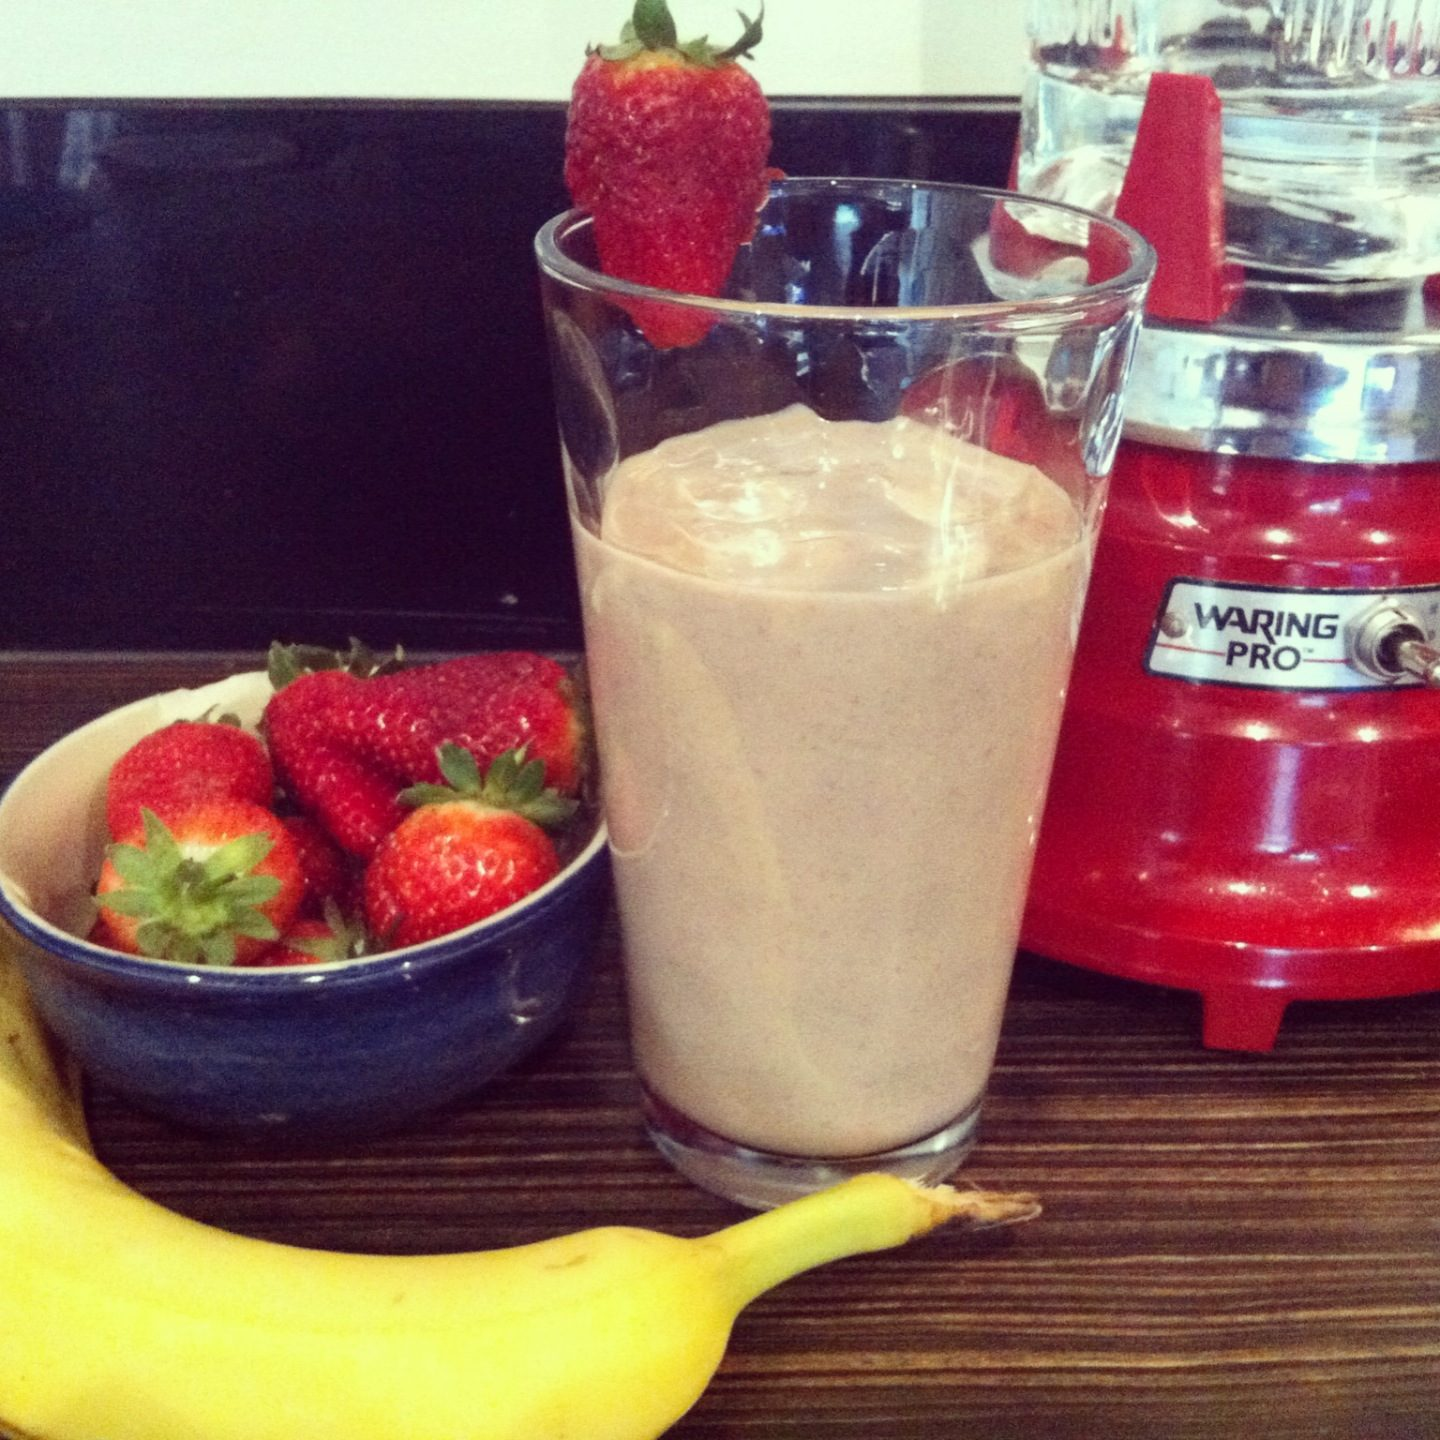 Strawberry & Banana Protein Work-Out Shake